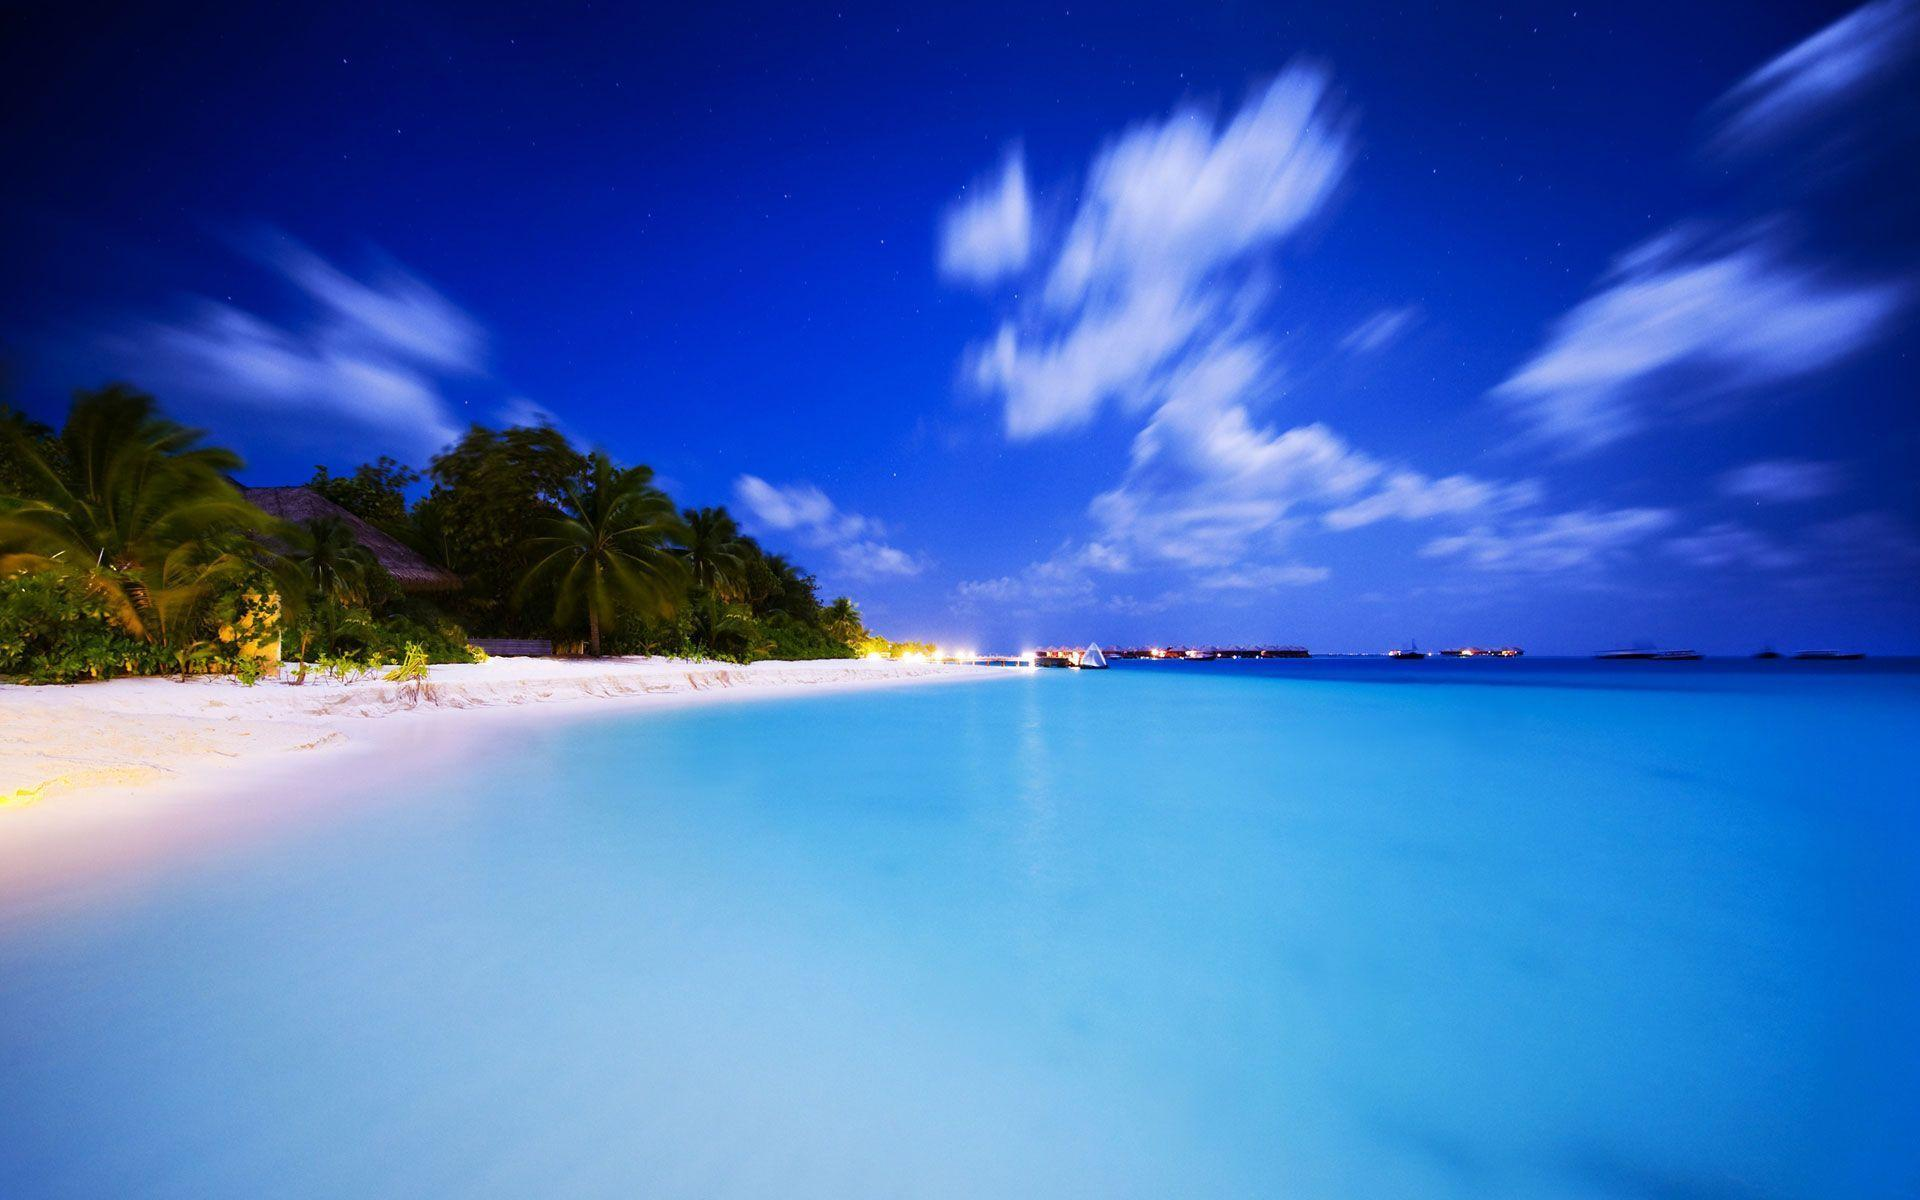 Tropical Island Wallpapers - Full HD wallpaper search - page 3